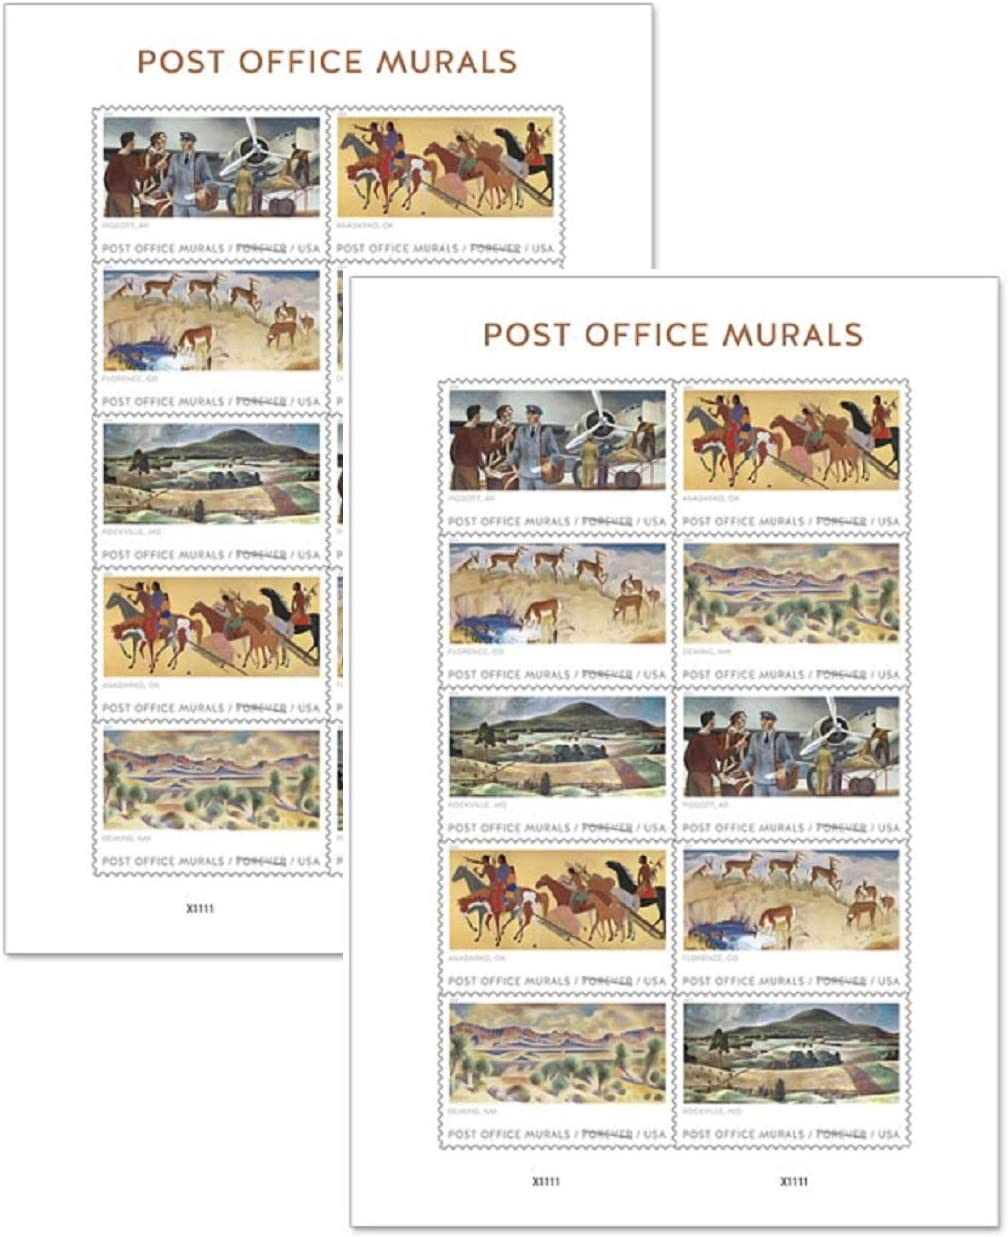 Post Office Murals Forever Stamps 2019 Release (2 Sheets of 10)